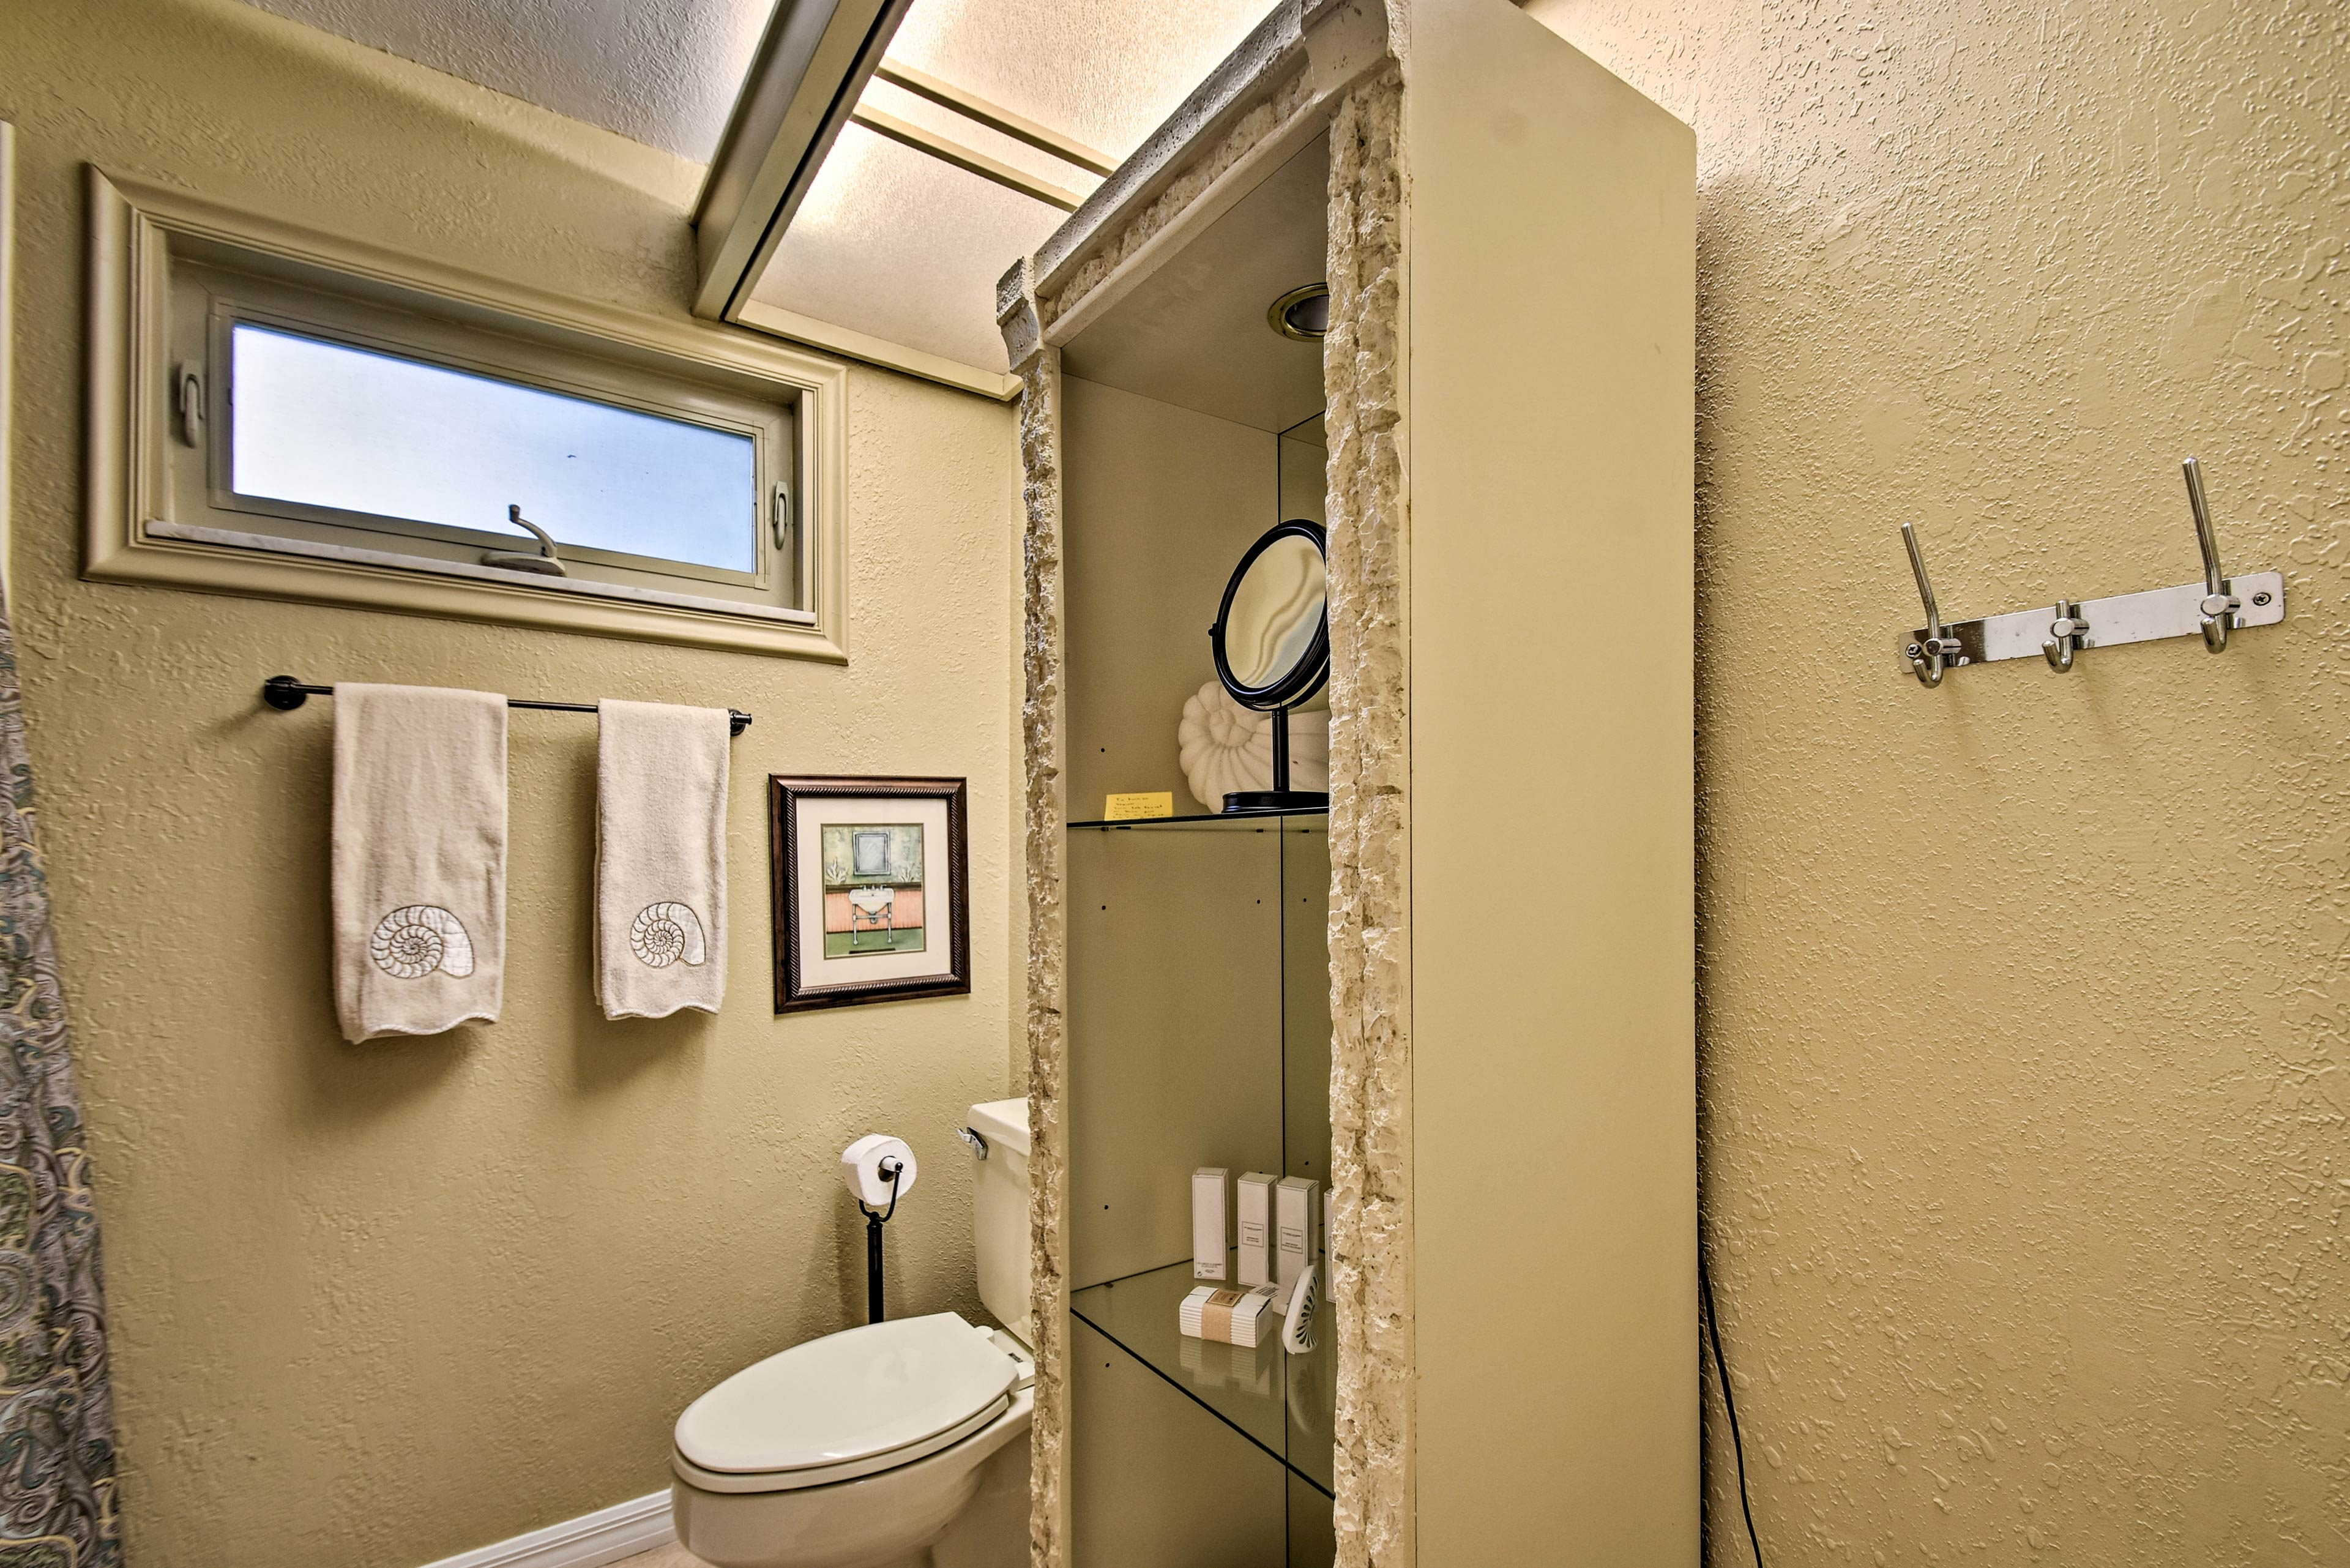 The chic bathroom features provided toiletries.